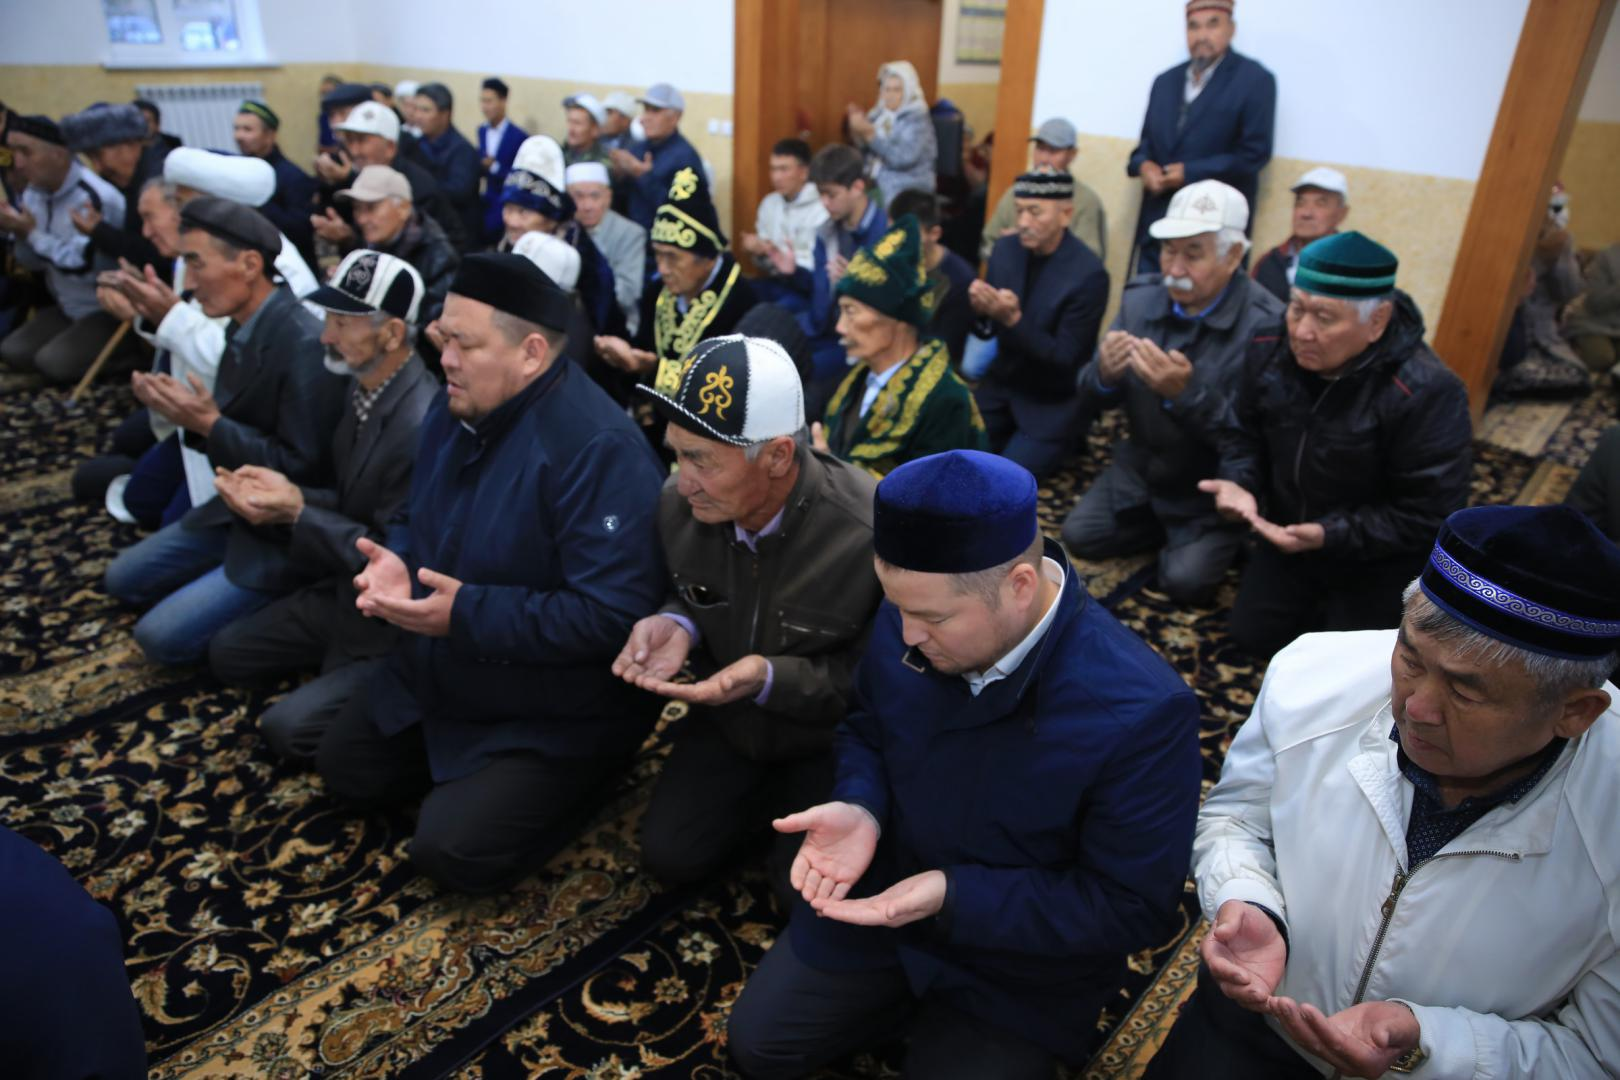 Kazakhstan toughens stance against extremists, focuses on rehabilitation